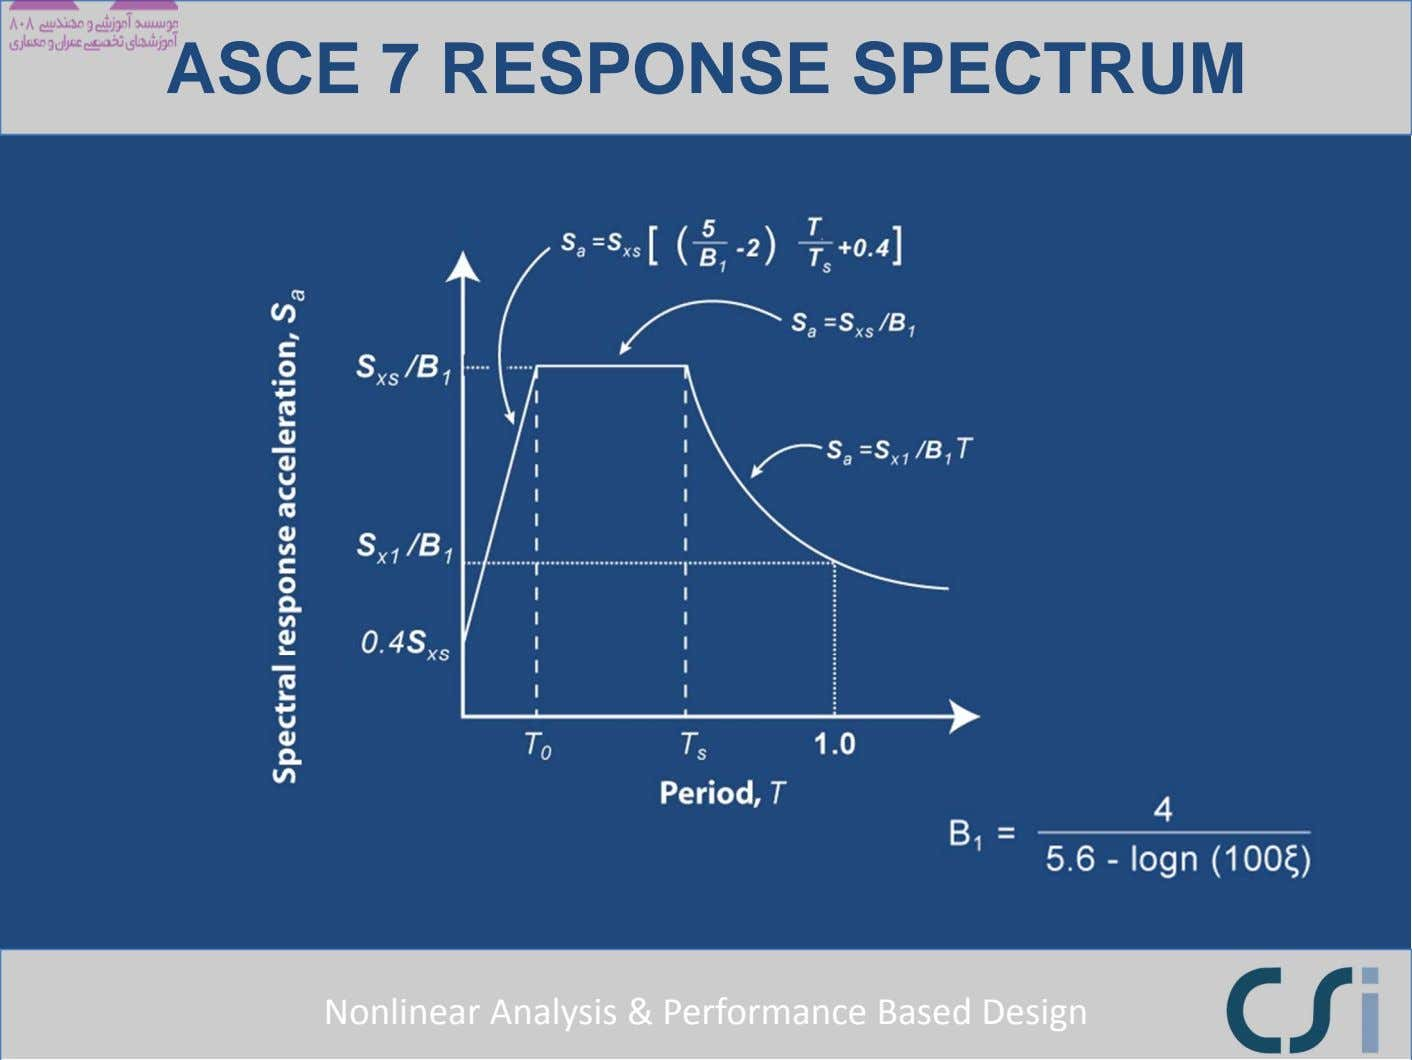 ASCE 7 RESPONSE SPECTRUM Nonlinear Analysis & Performance Based Design